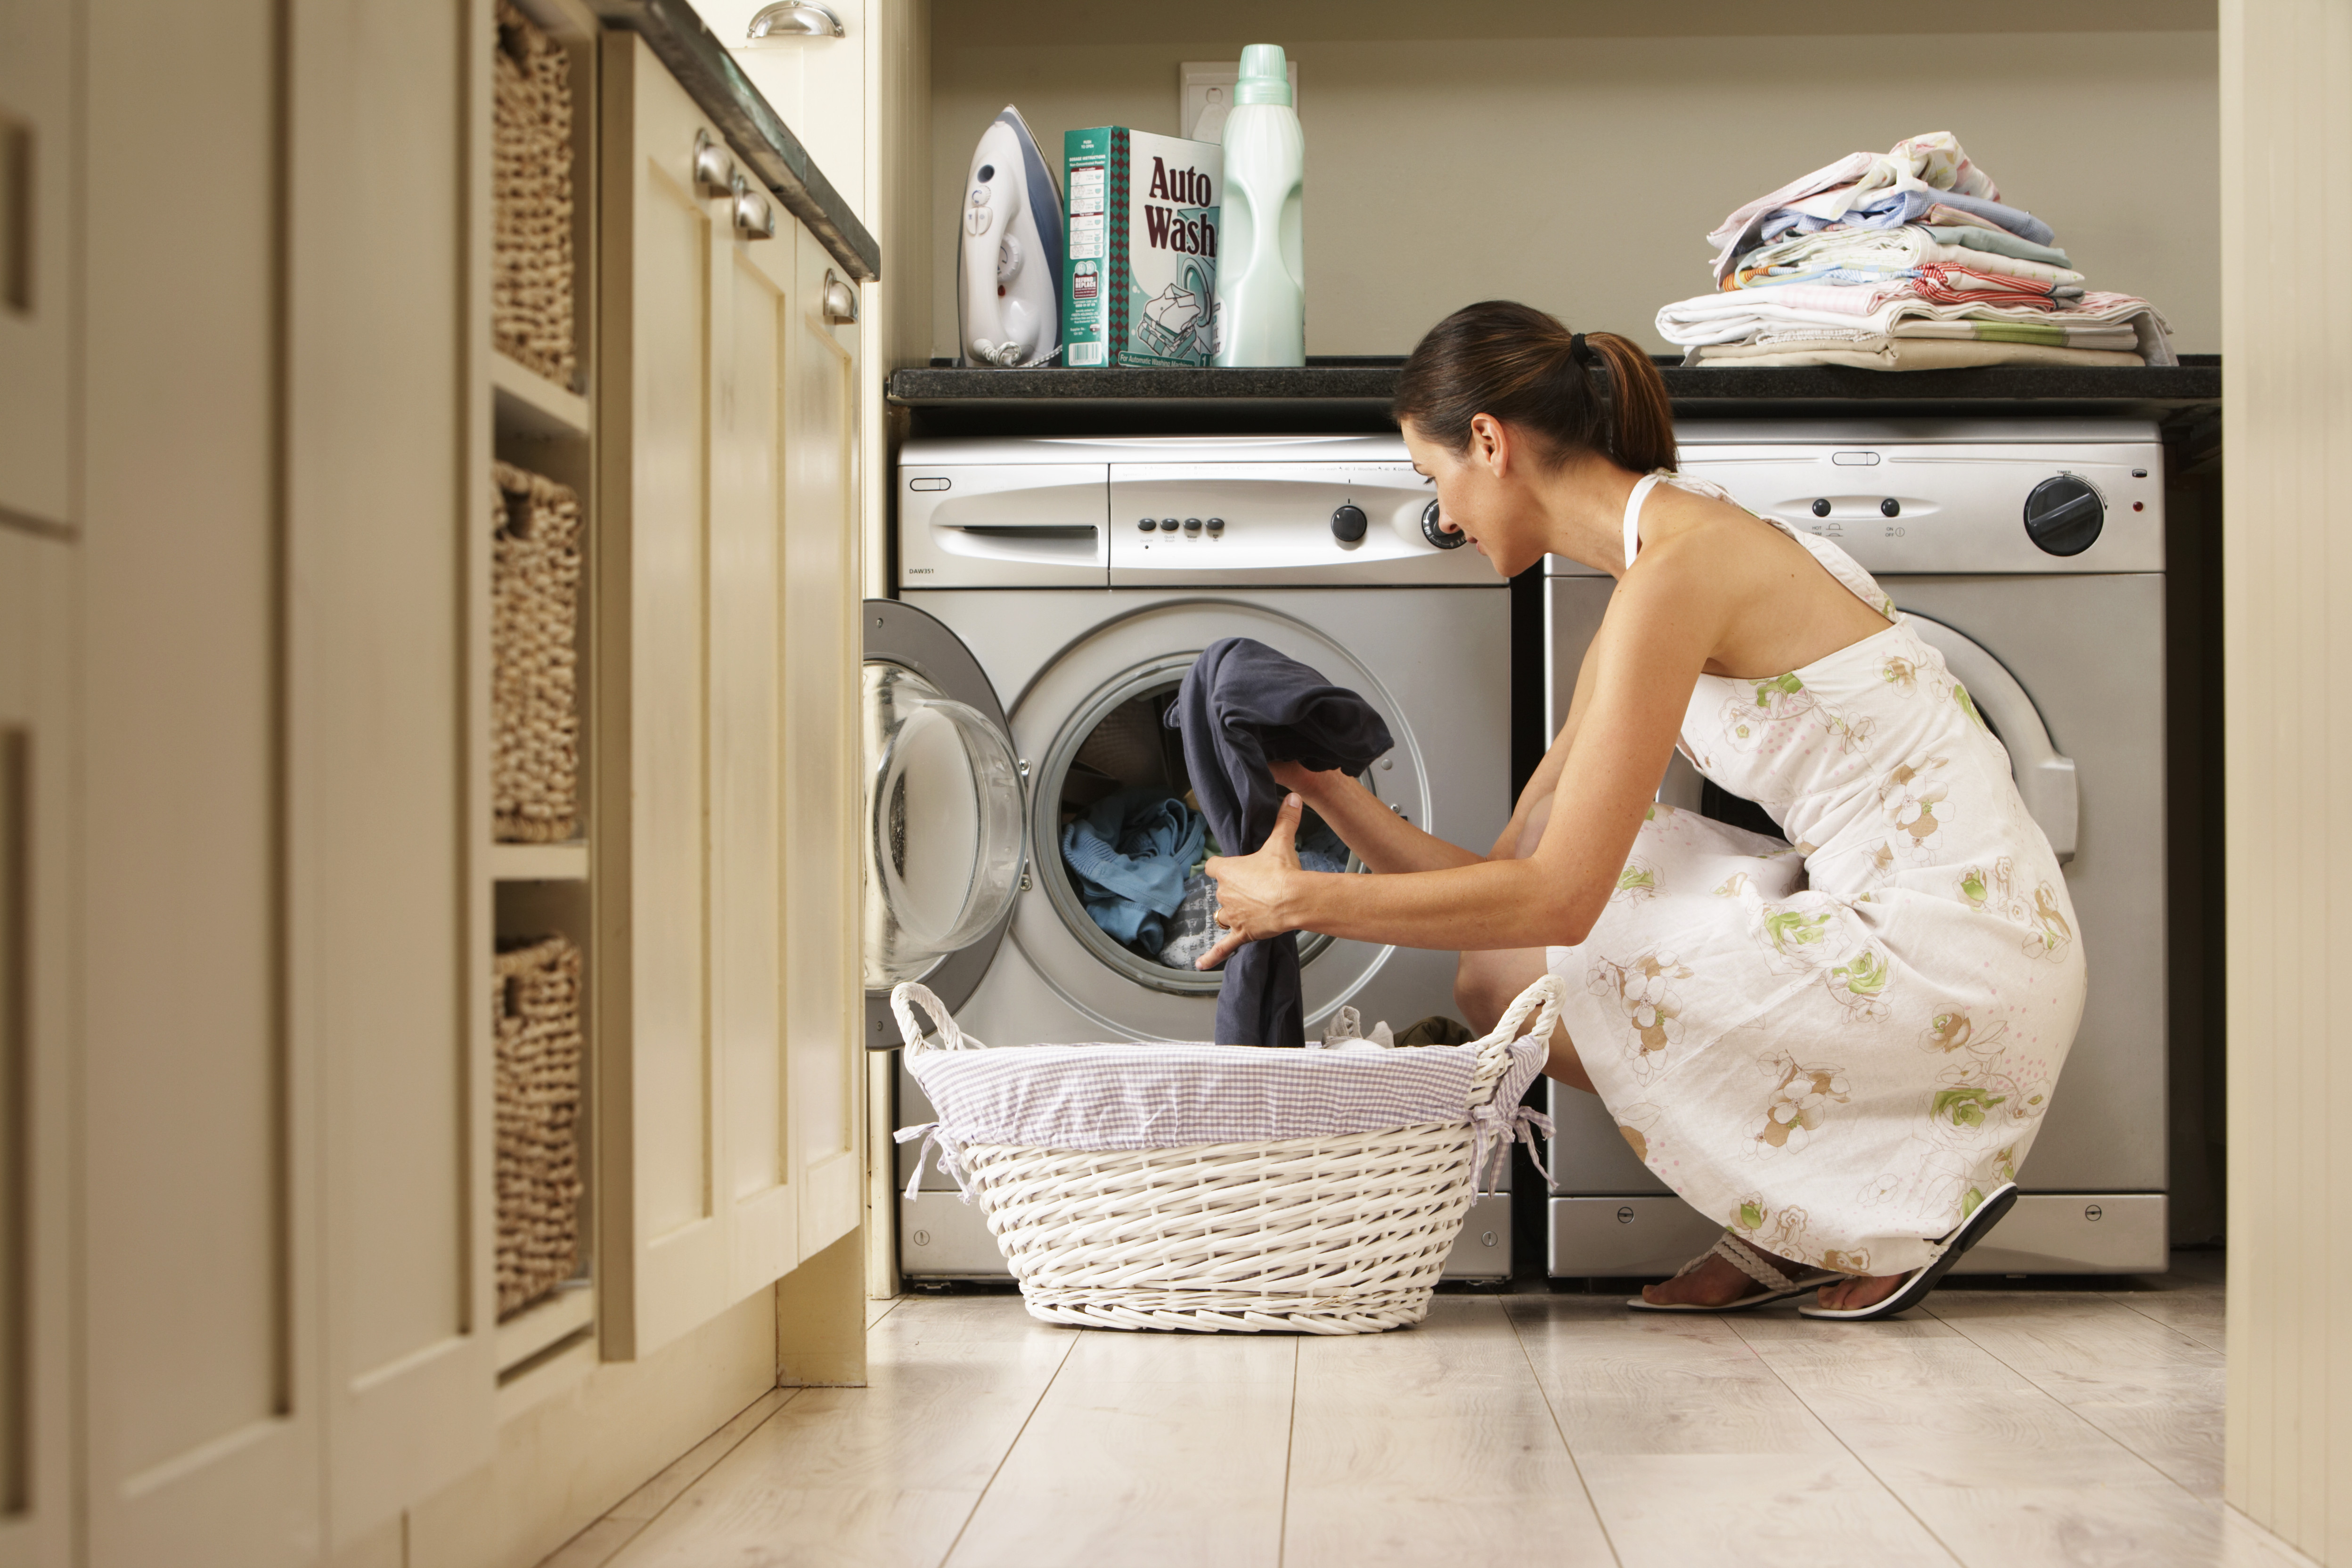 What Are the Pros & Cons of Using a Washing Machine Without